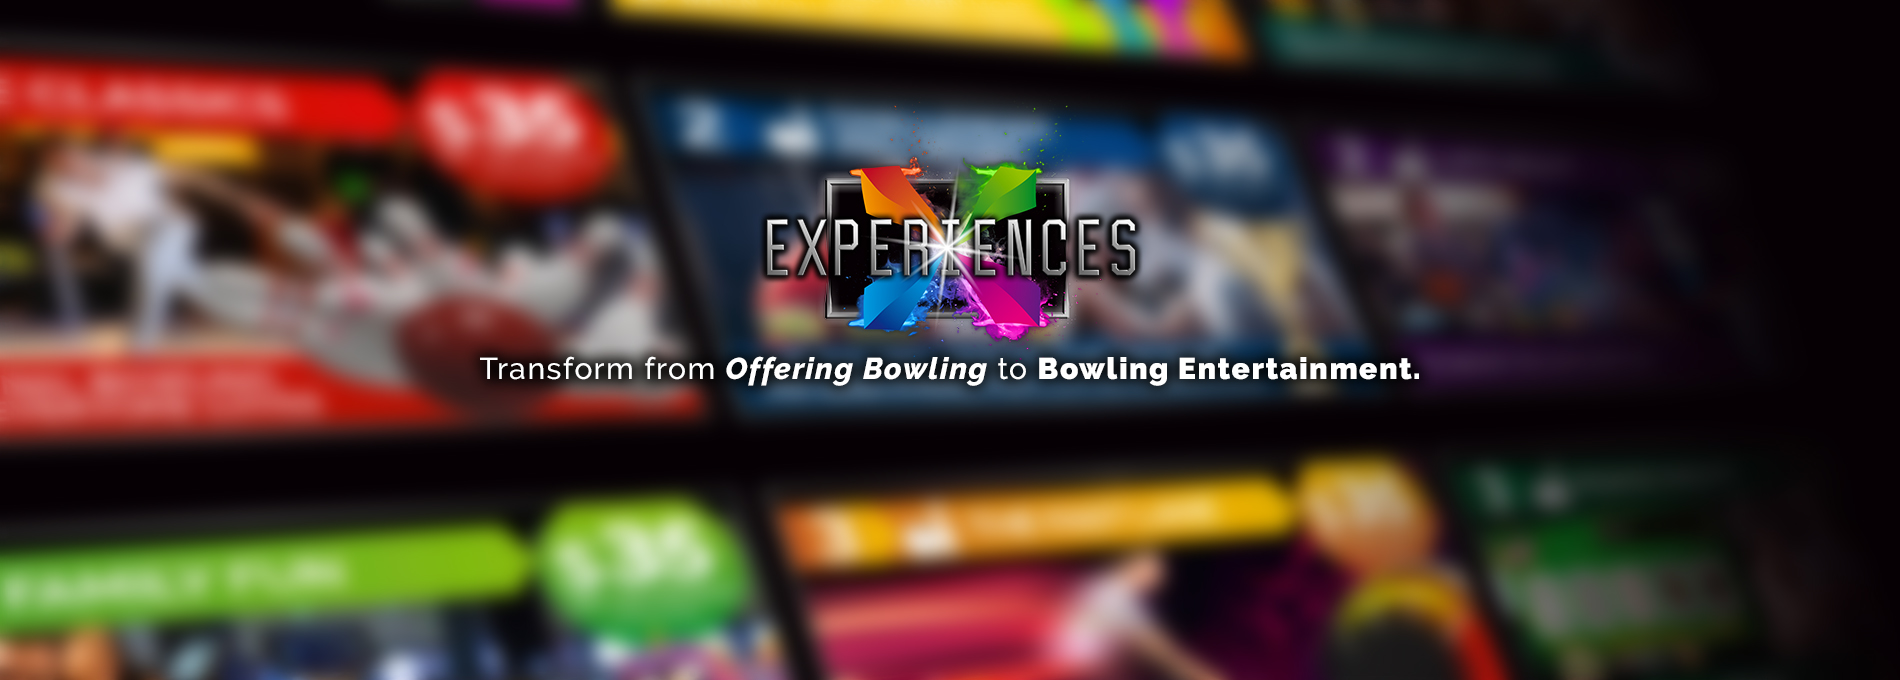 QubicaAMF Bowling BES X Experiences home banner